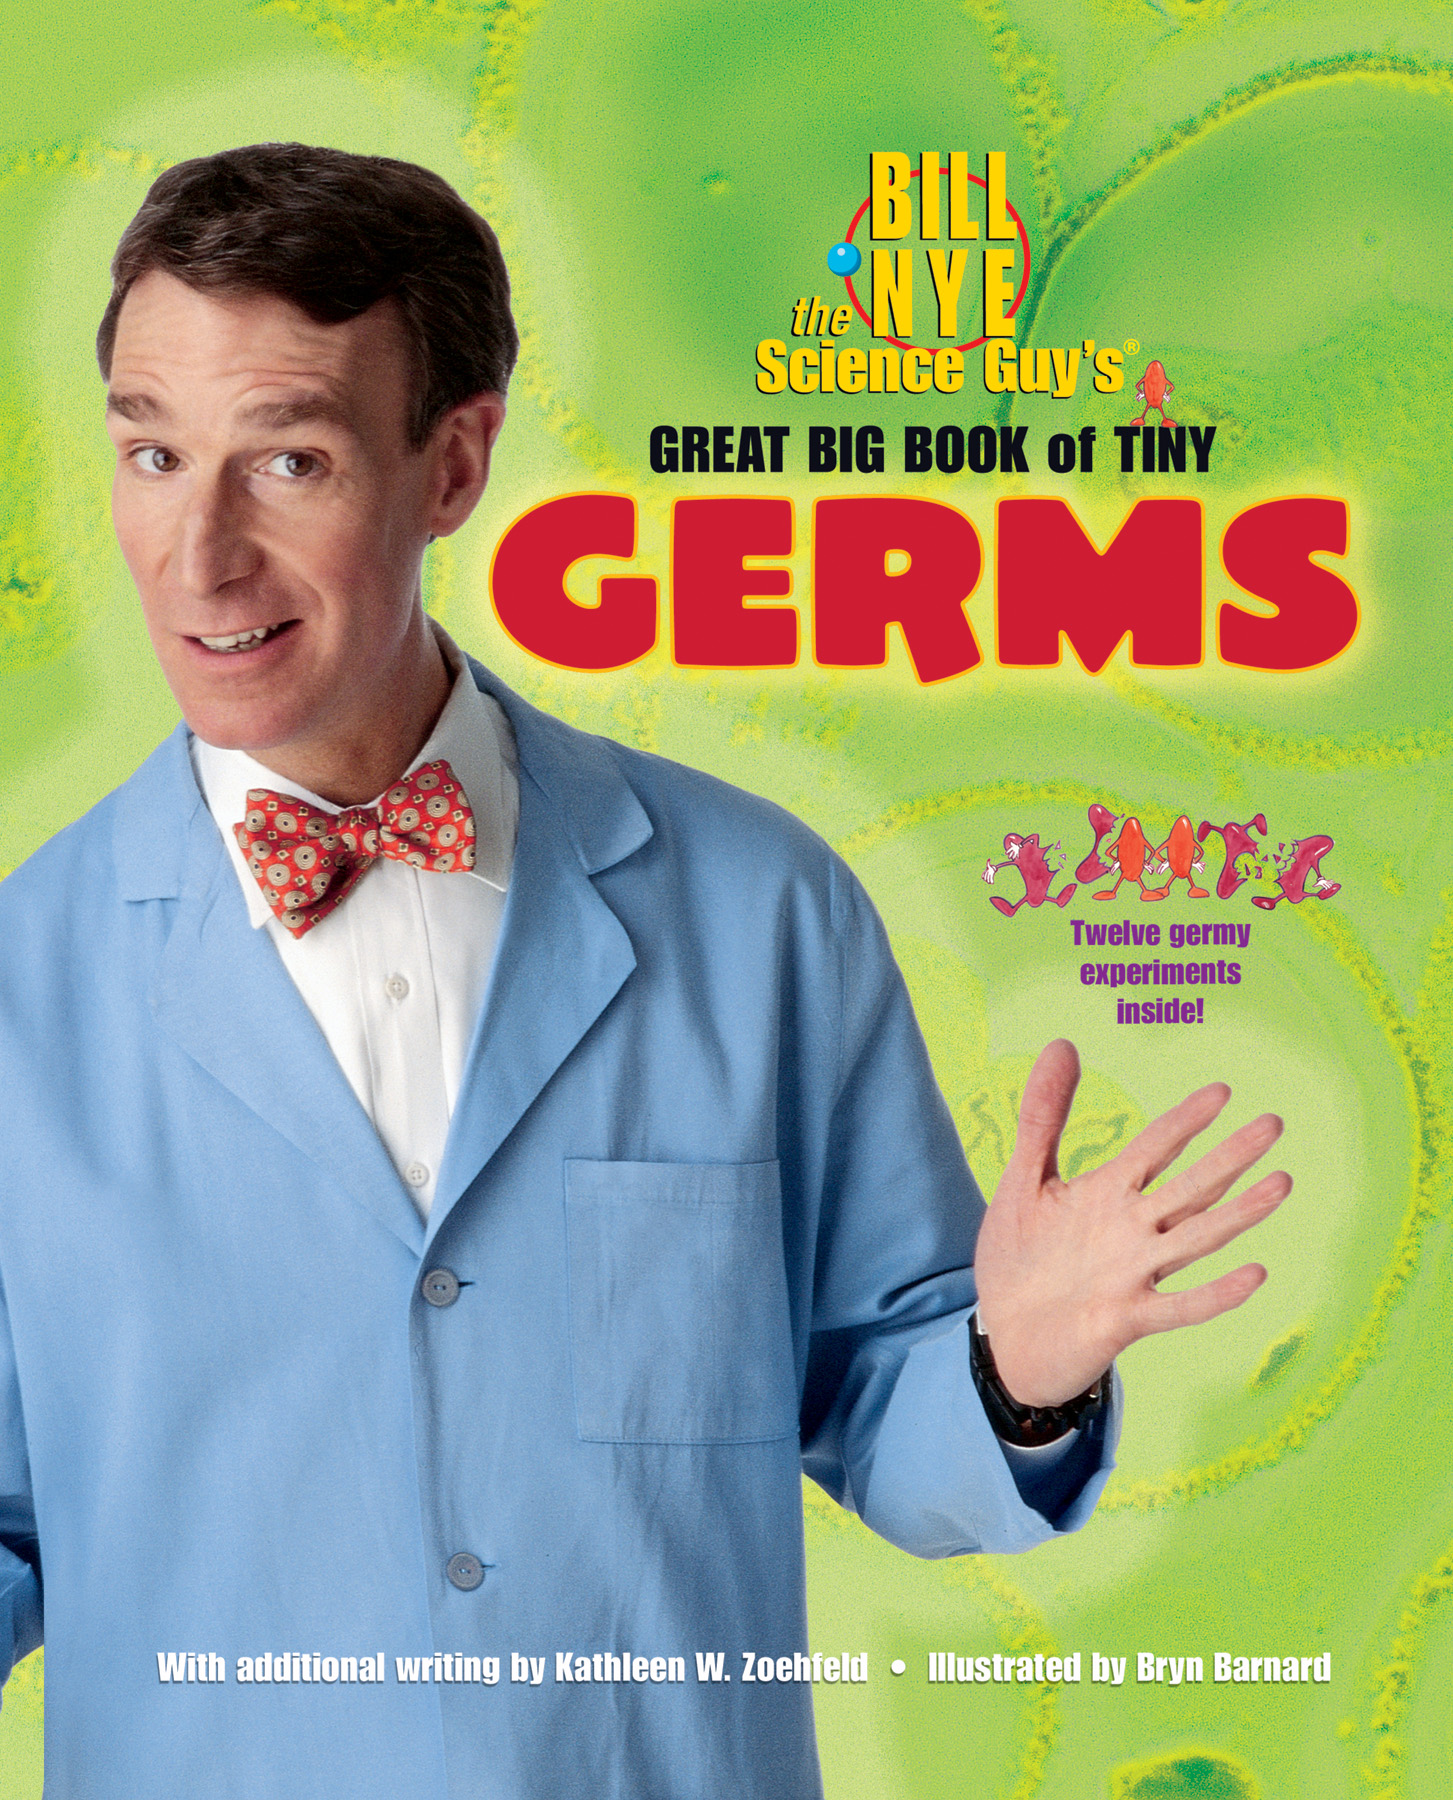 Bill Nye the Science Guy's Tiny Book of Germs